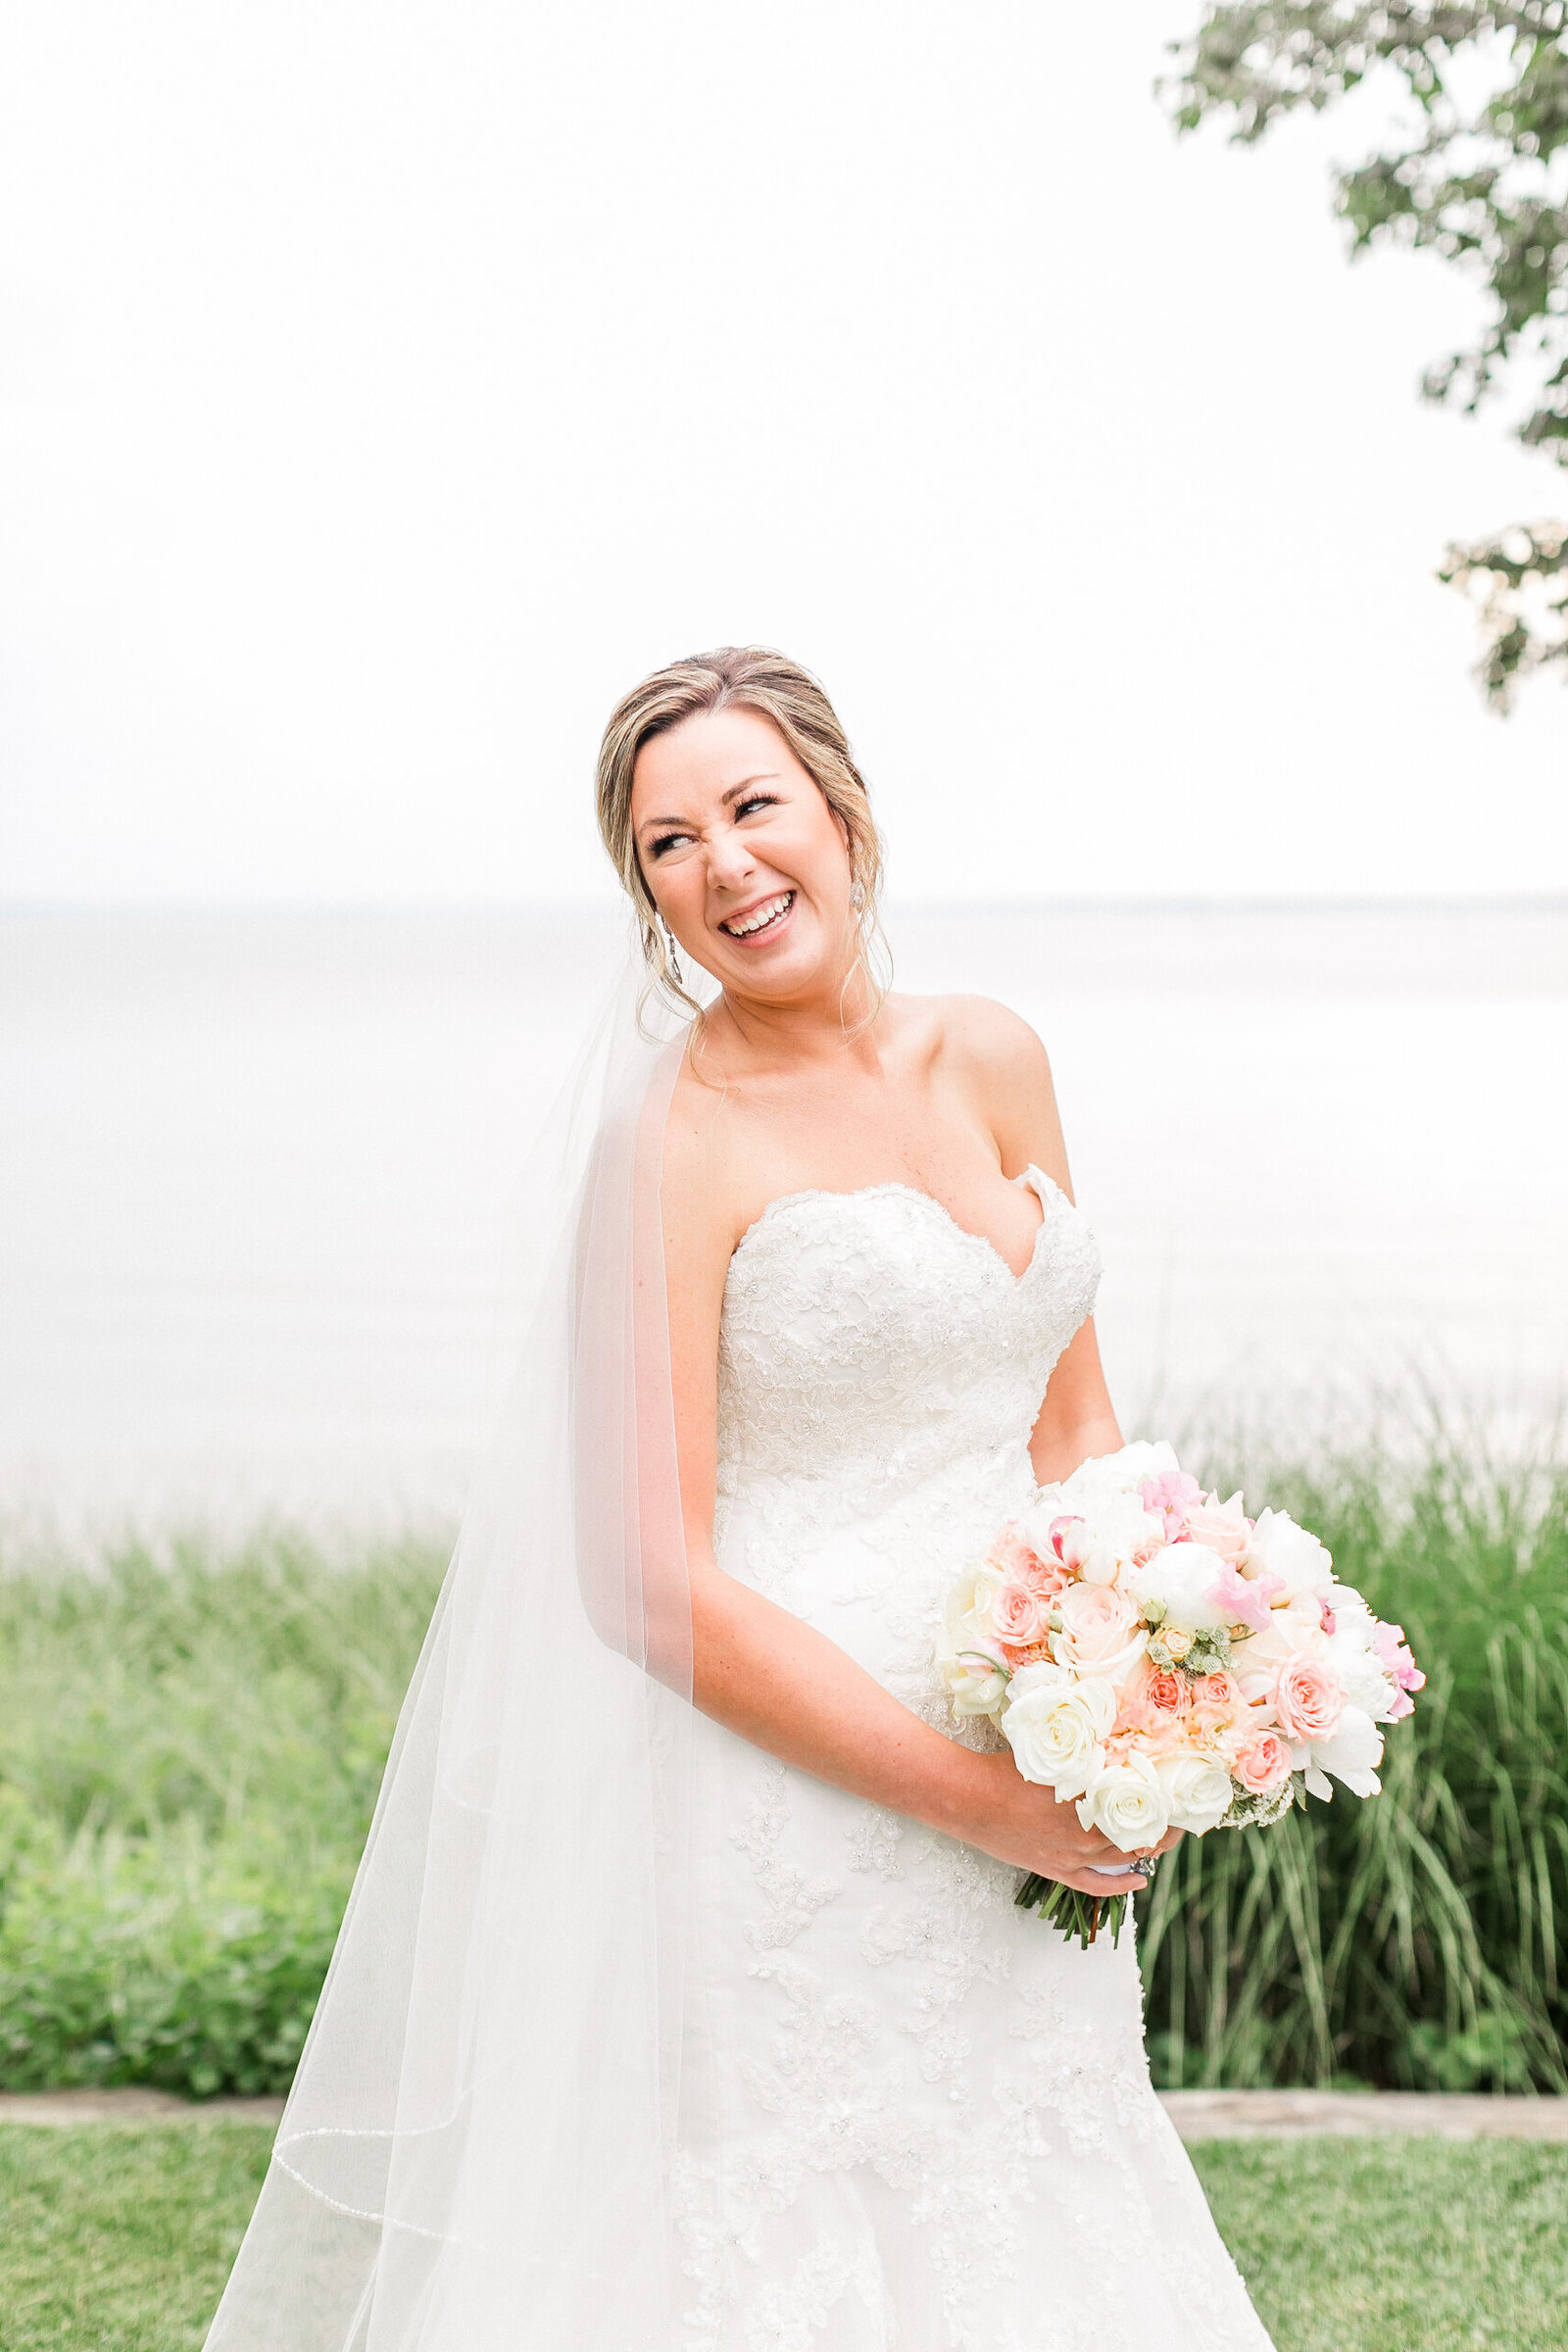 Natalie and Stephen Wedding 2019-213